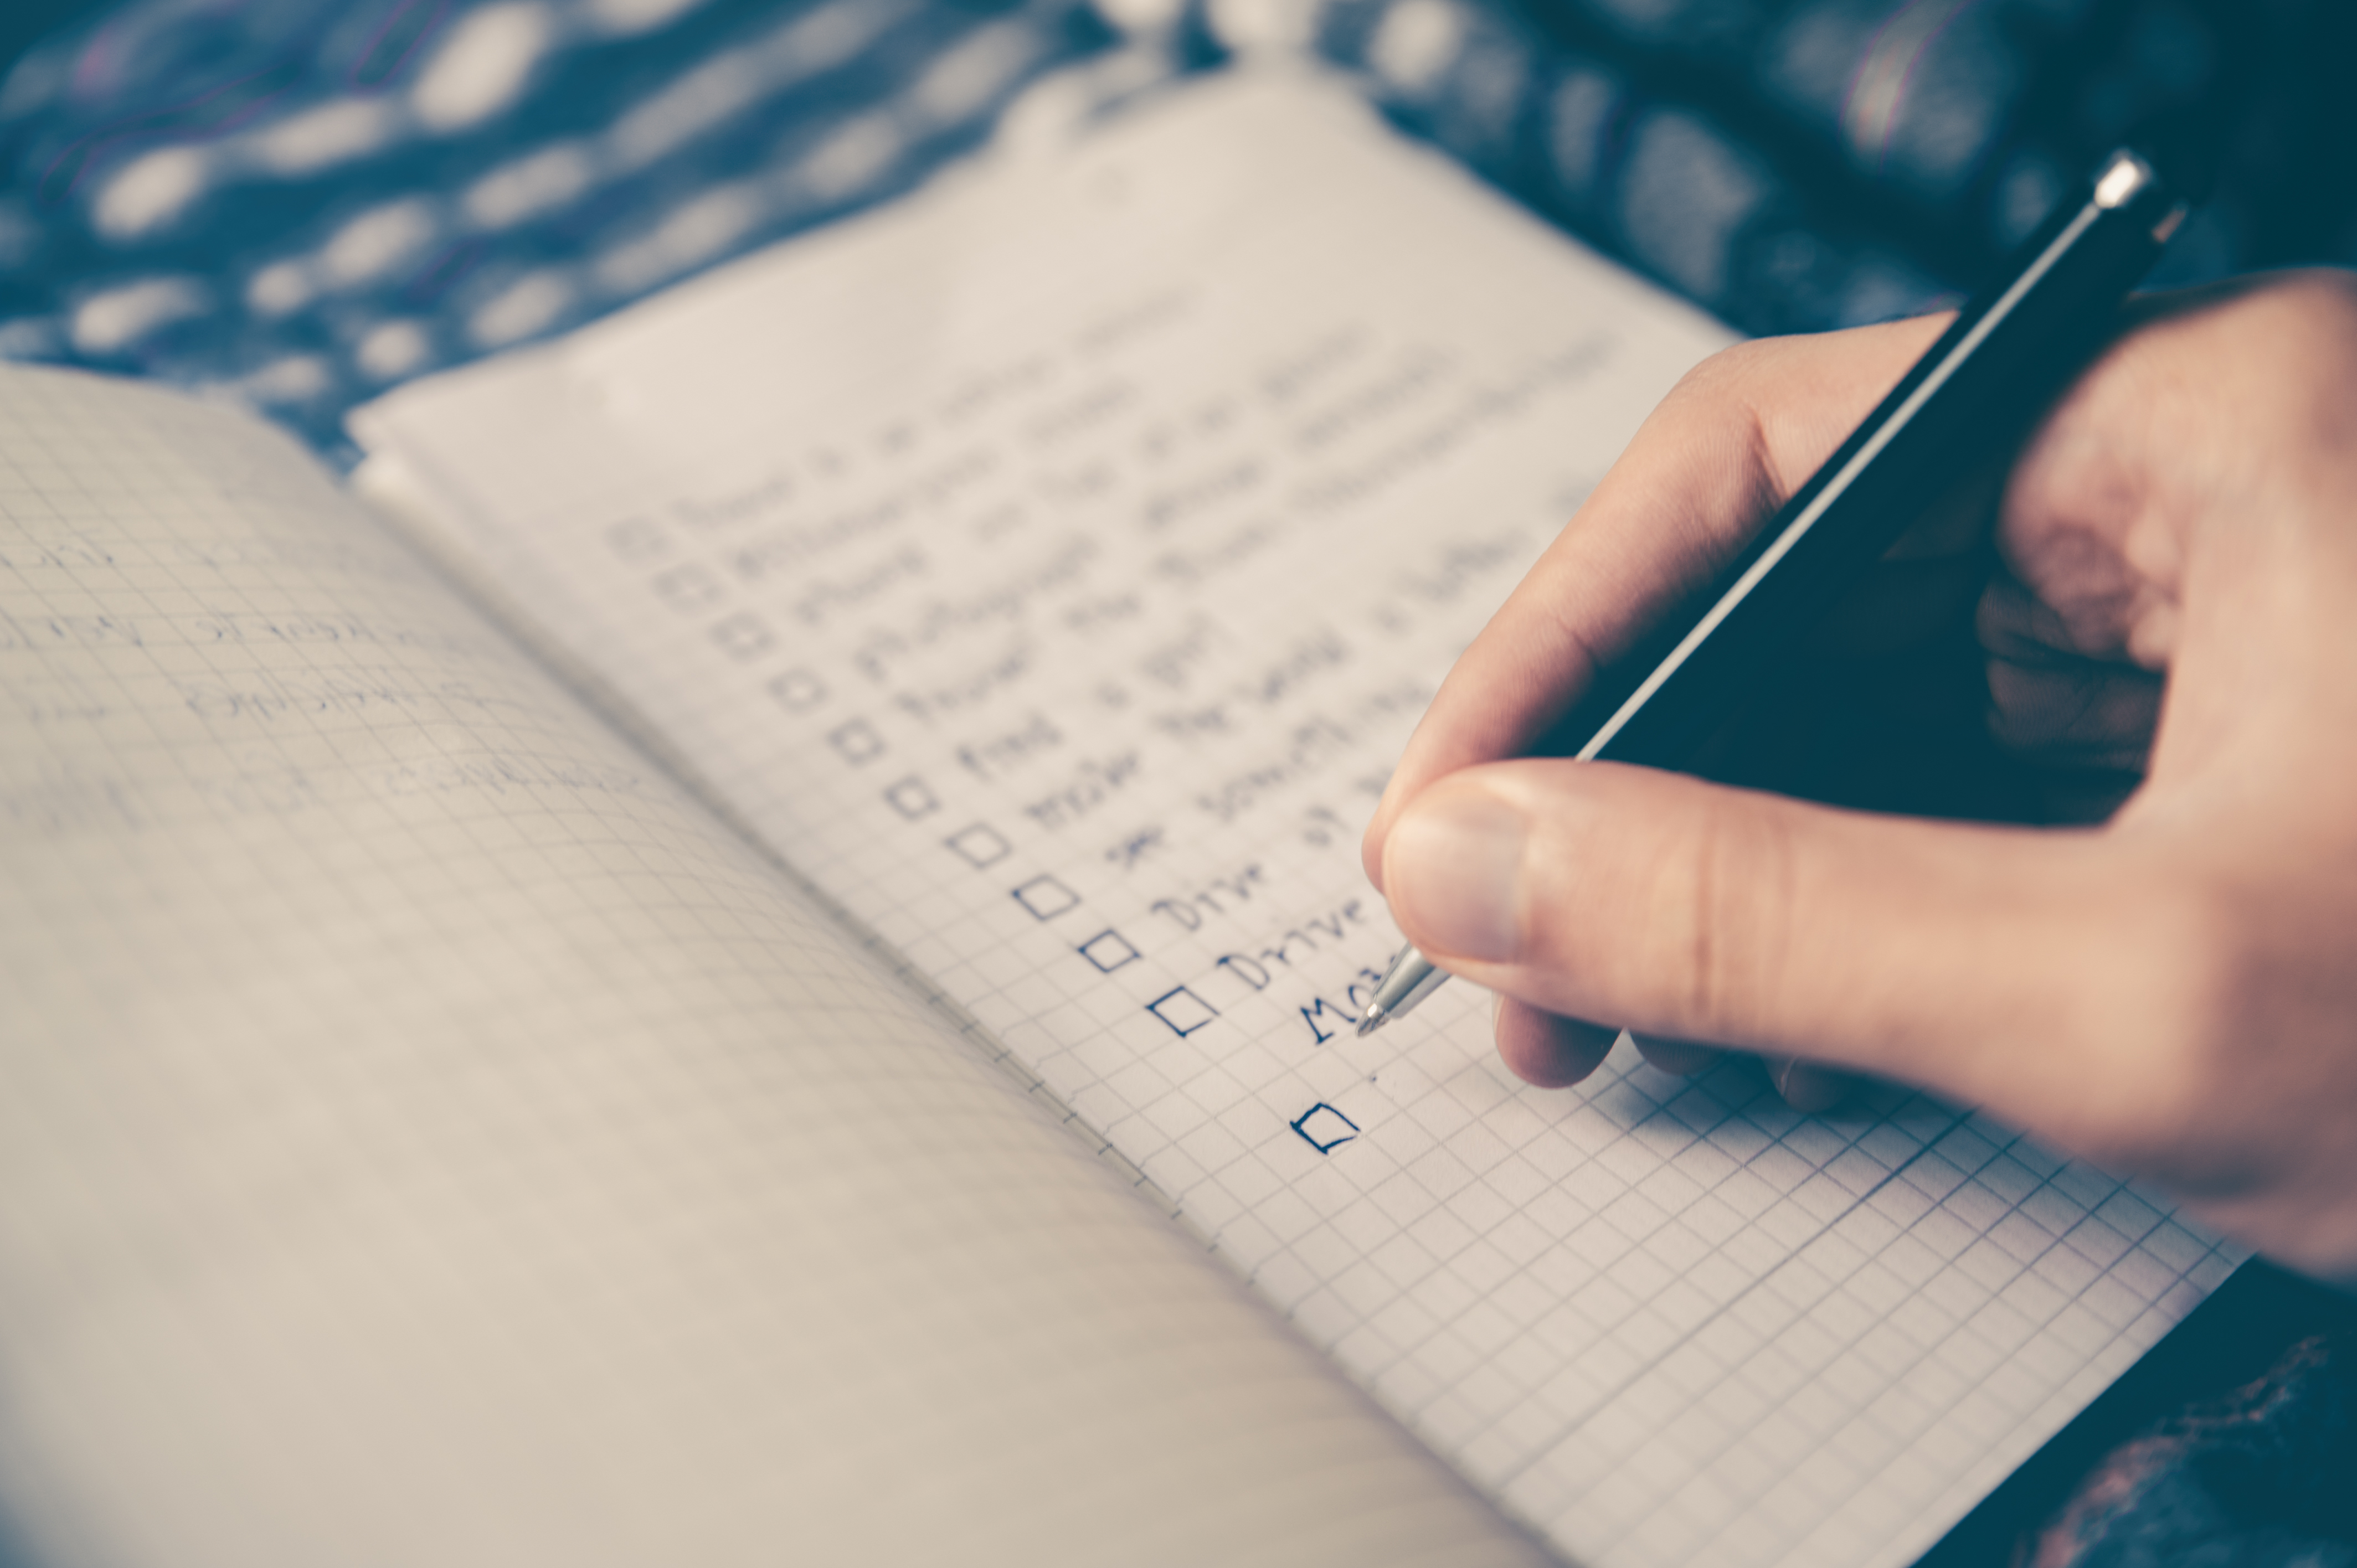 Checklist for Back-to-School Safety and Career Success